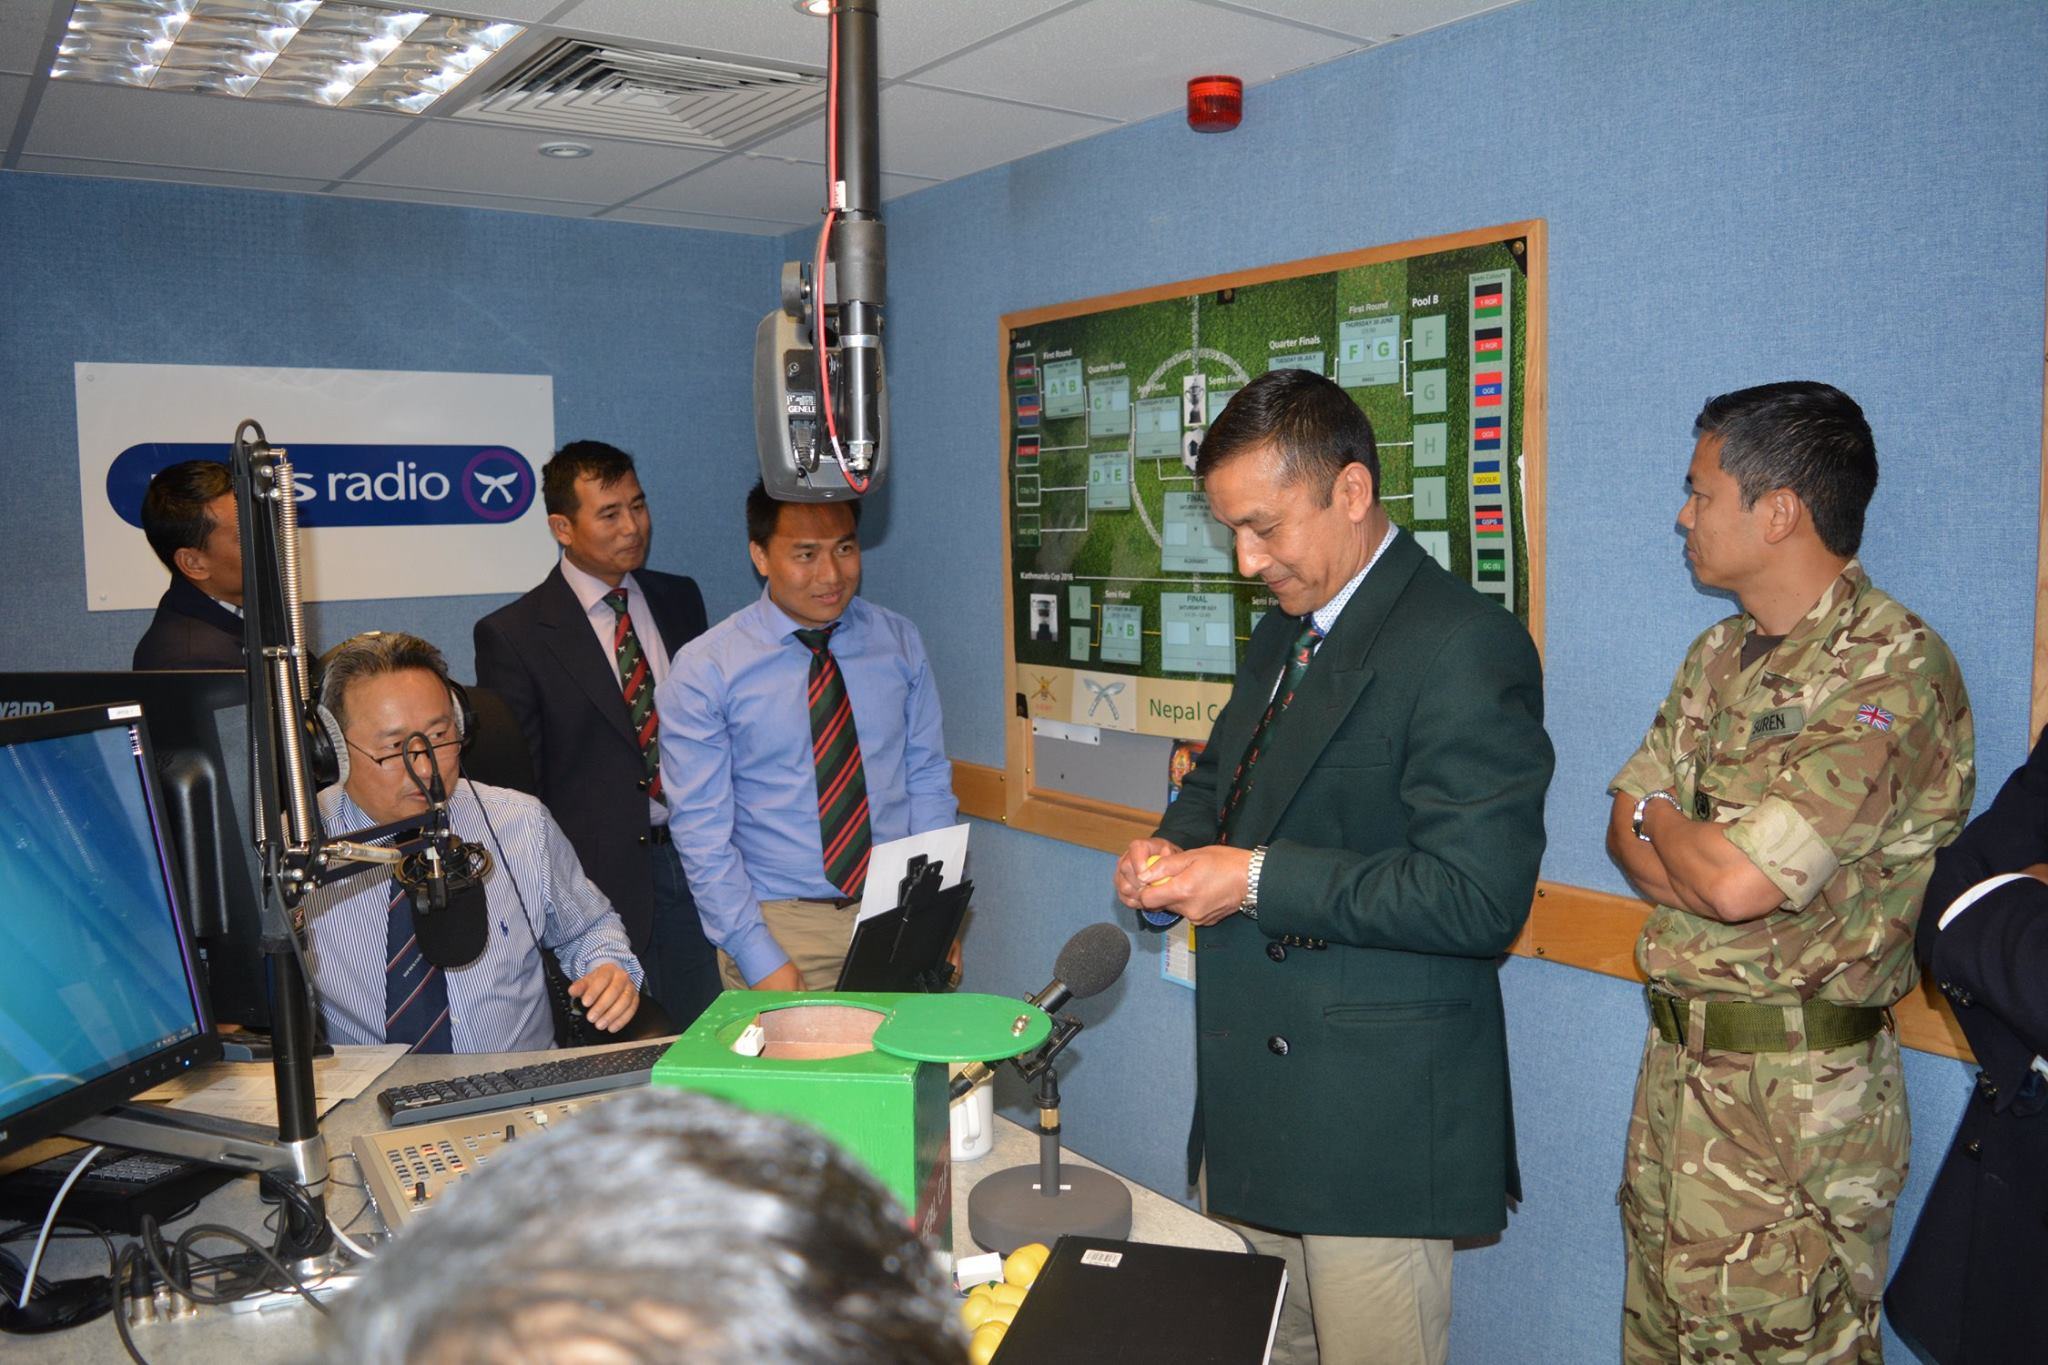 Capt Dhalindra Khatri Chhetri taking his part in the draw